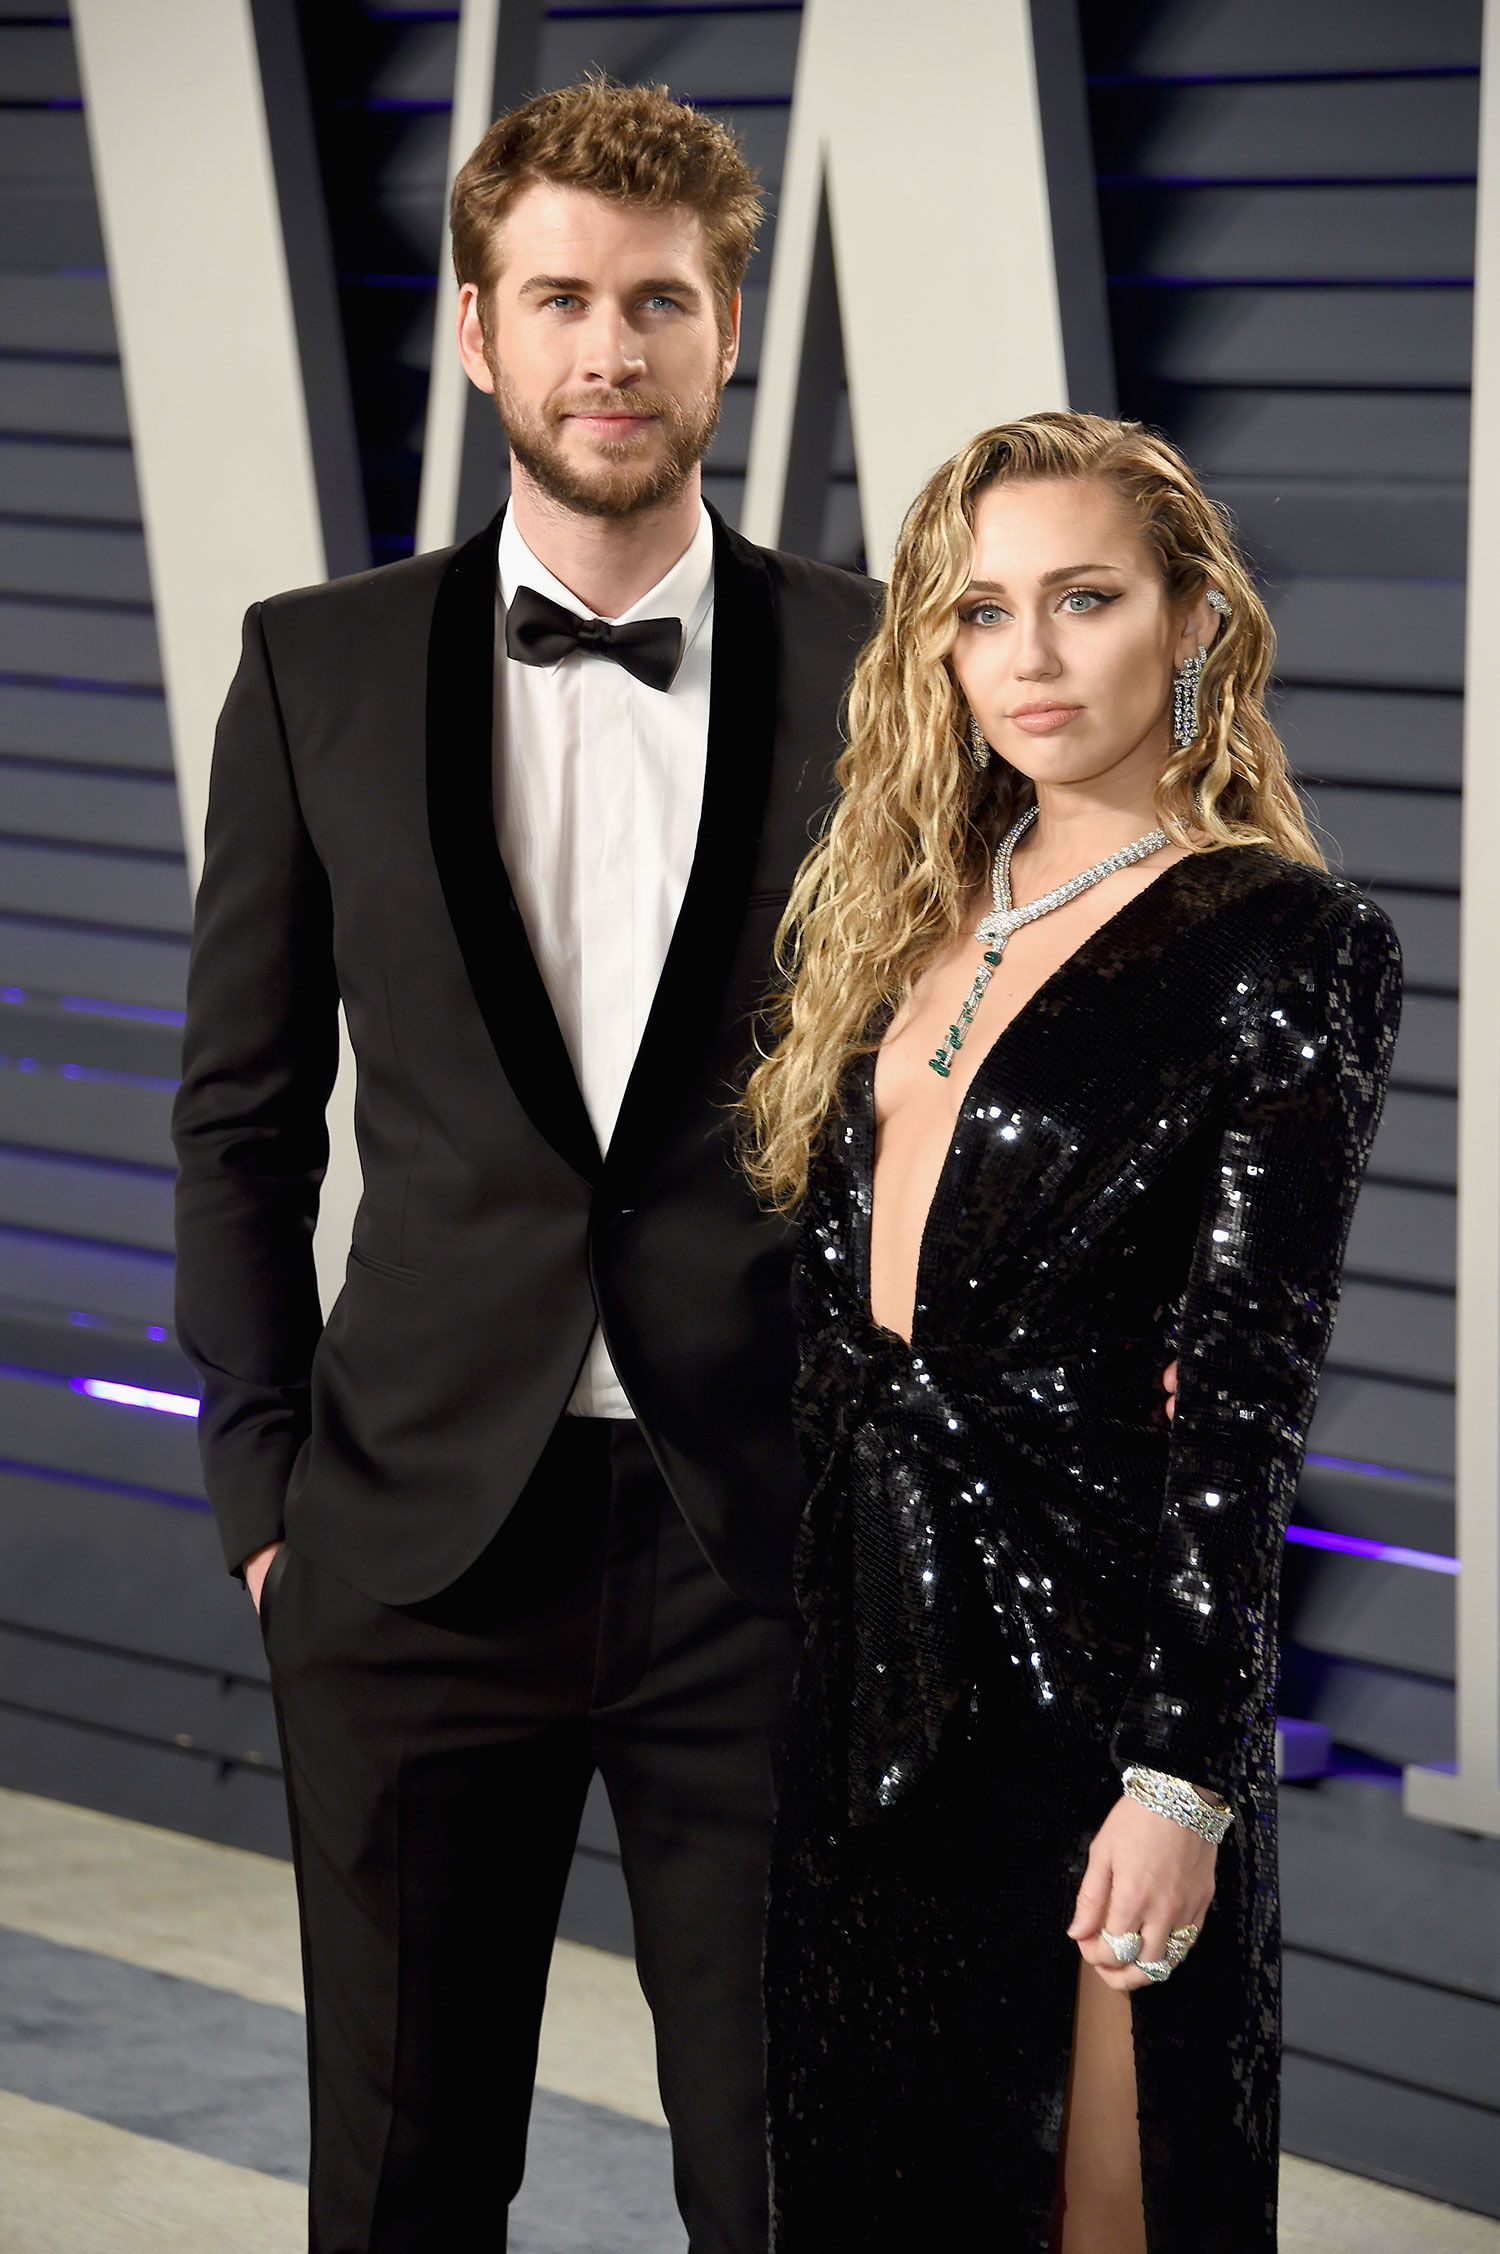 Liam Hemsworth Was Reportedly 'Blindsided' by Miley Cyrus' Rep Announcing Their Separation